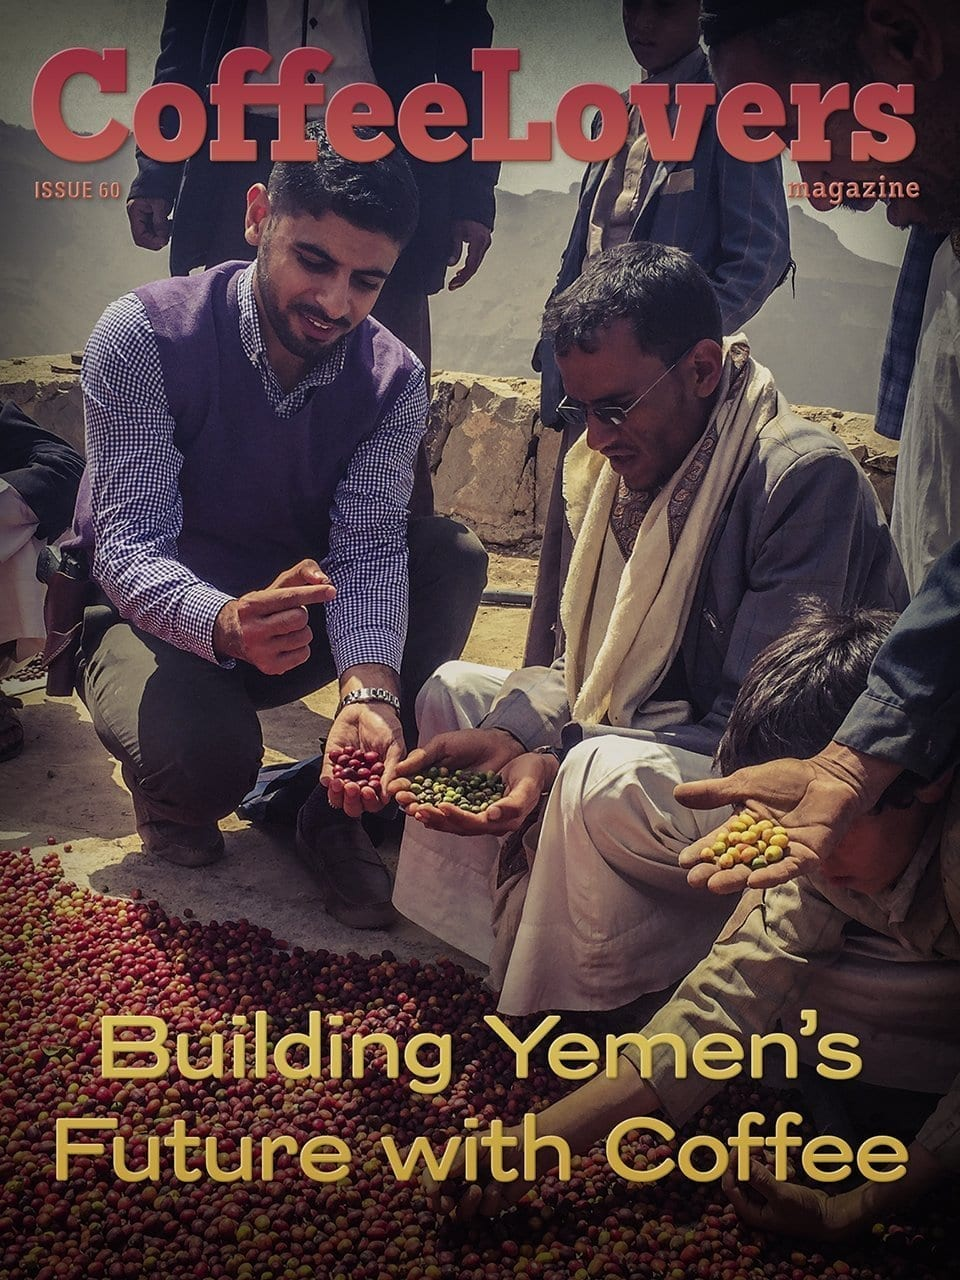 Building Yemen's Future with Coffee – Issue 60